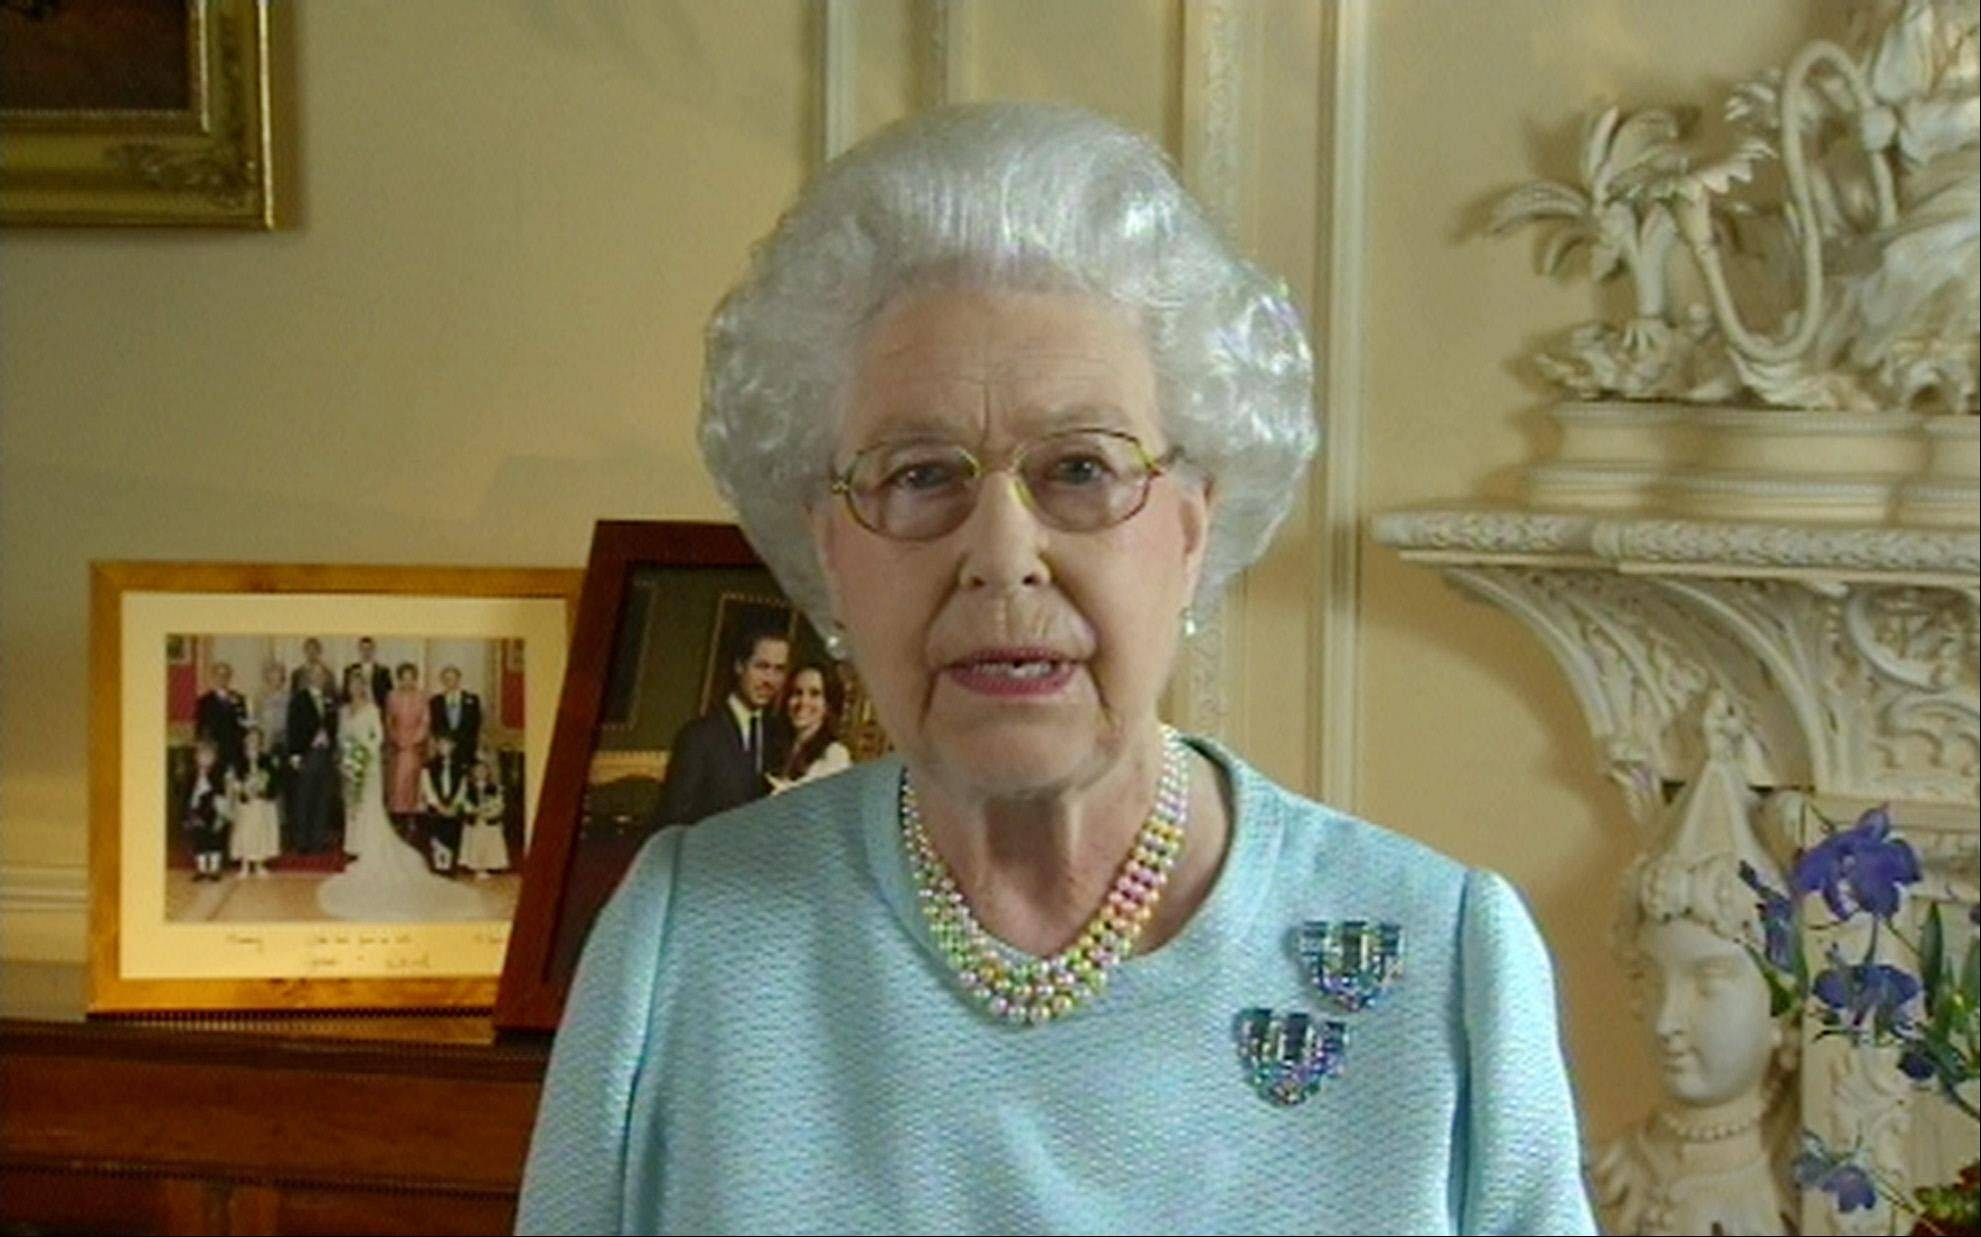 "This image made available by ITN taken from video showsBritain's Queen Elizabeth II addressing the country and Commonwealth, during the Diamond Jubilee celebrations, Tuesday evening, June 5, 2012. The queen recorded the two-minute message on Monday before the evening's concert outside the palace. In the opening of her speech she said ""The events that I have attended to mark my Diamond Jubilee have been a humbling experience. It has touched me deeply to see so many thousands of families, neighbours and friends celebrating together in such a happy atmosphere""."